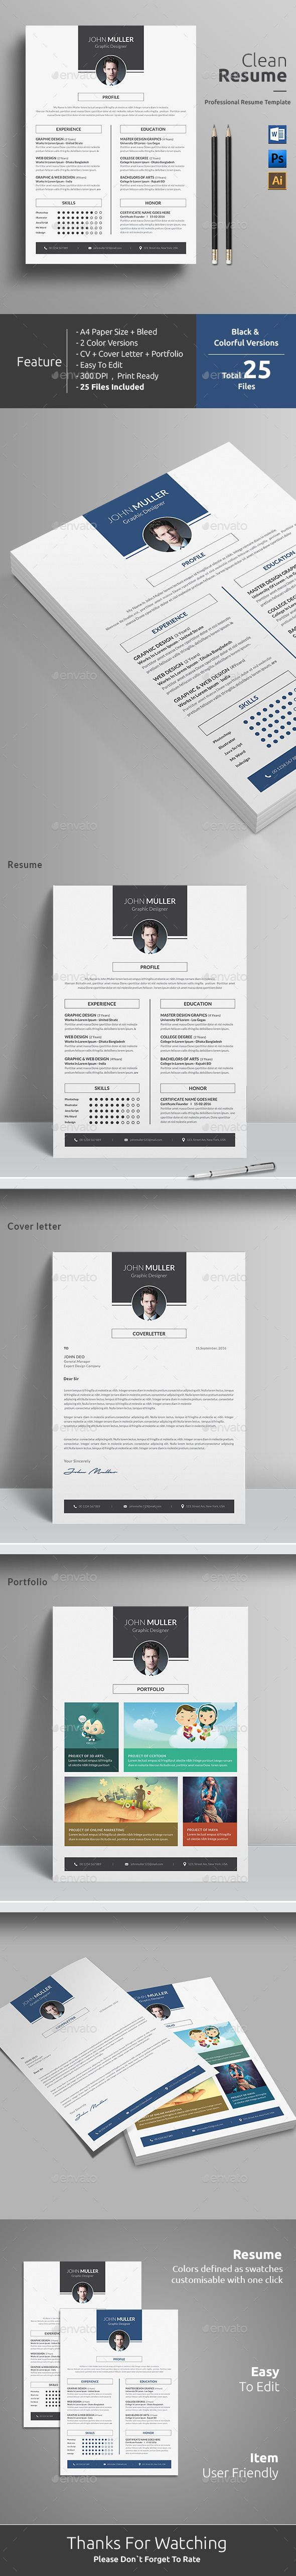 Famous 1 Year Experience Resume Format For Dot Net Tall 1.5 Inch Hexagon Template Shaped 100 Template 1099 Excel Template Young 1099 Misc Form Template Purple12 Inch Ruler Template 107 Best Images About CV On Pinterest | Graphic Designer Resume ..